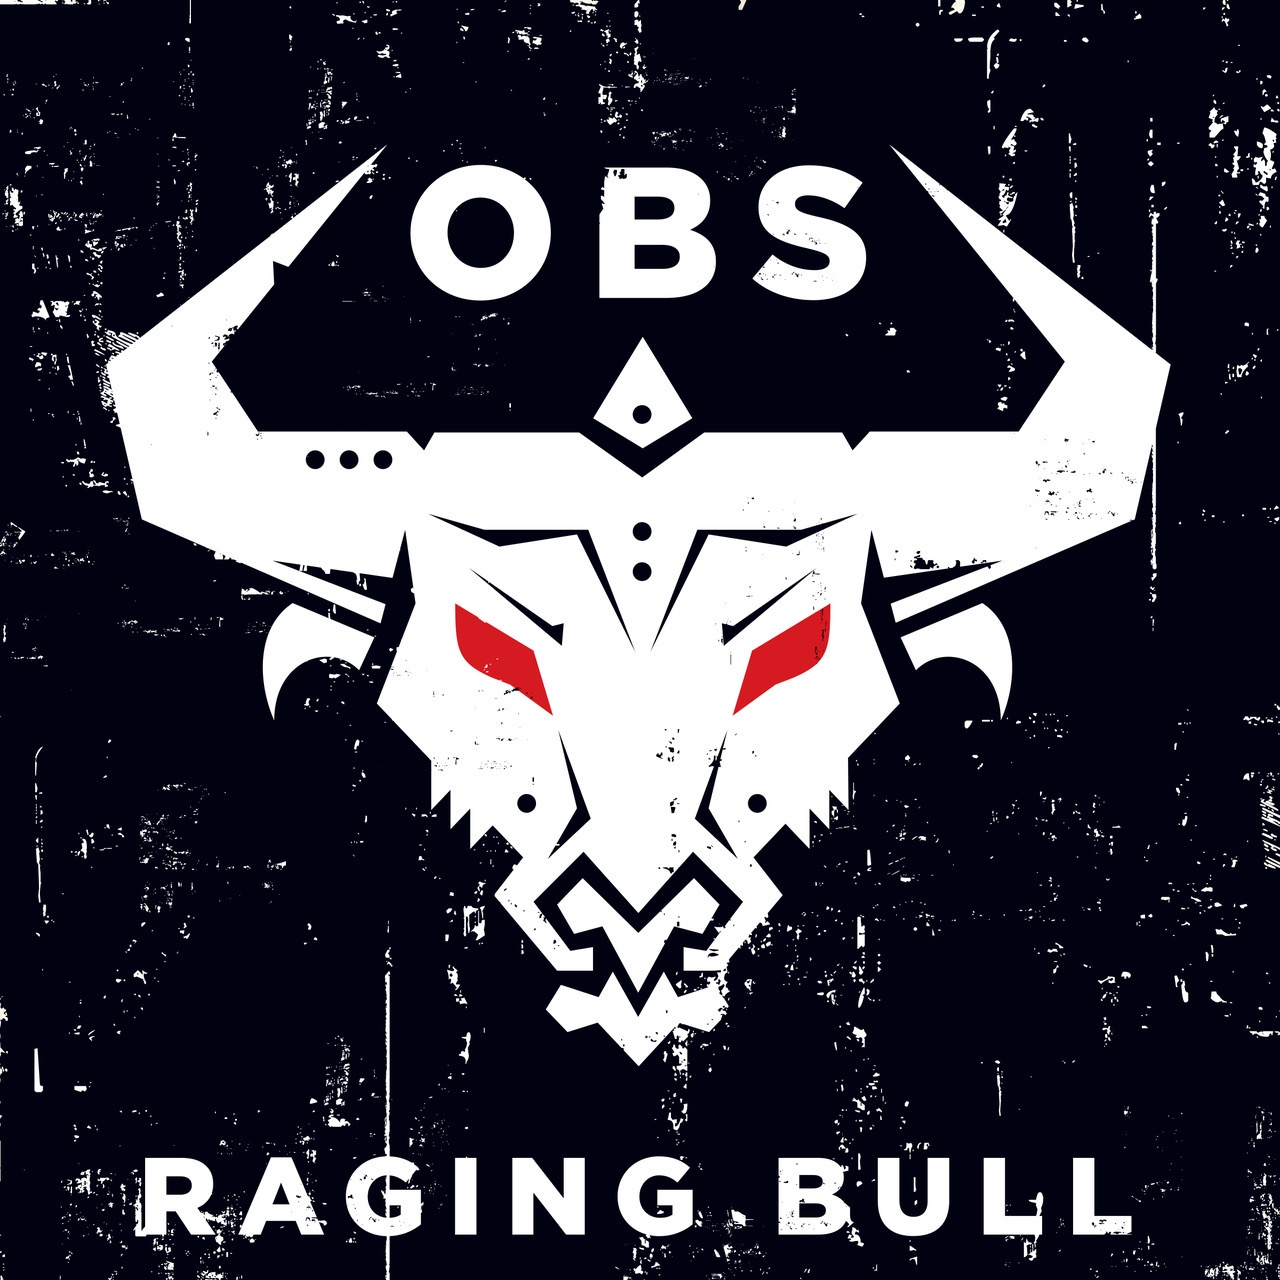 One Bad Son - Raging Bull